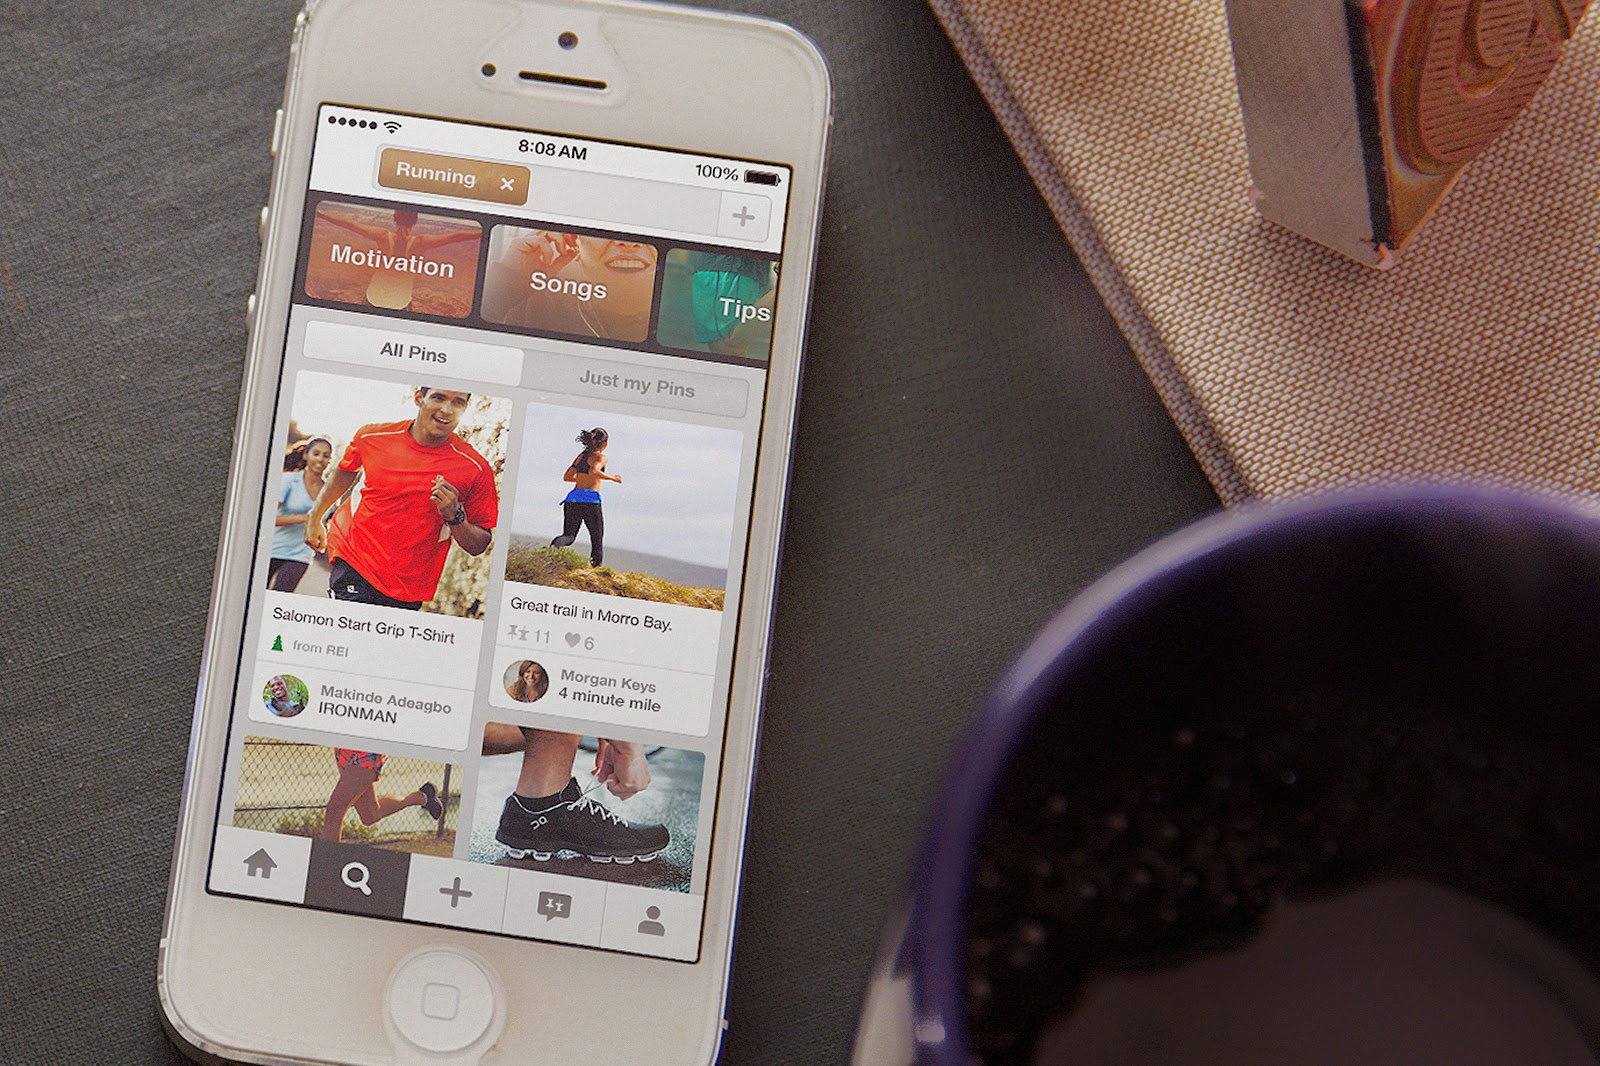 Pinterest Introduces Guided Search For Smartphones